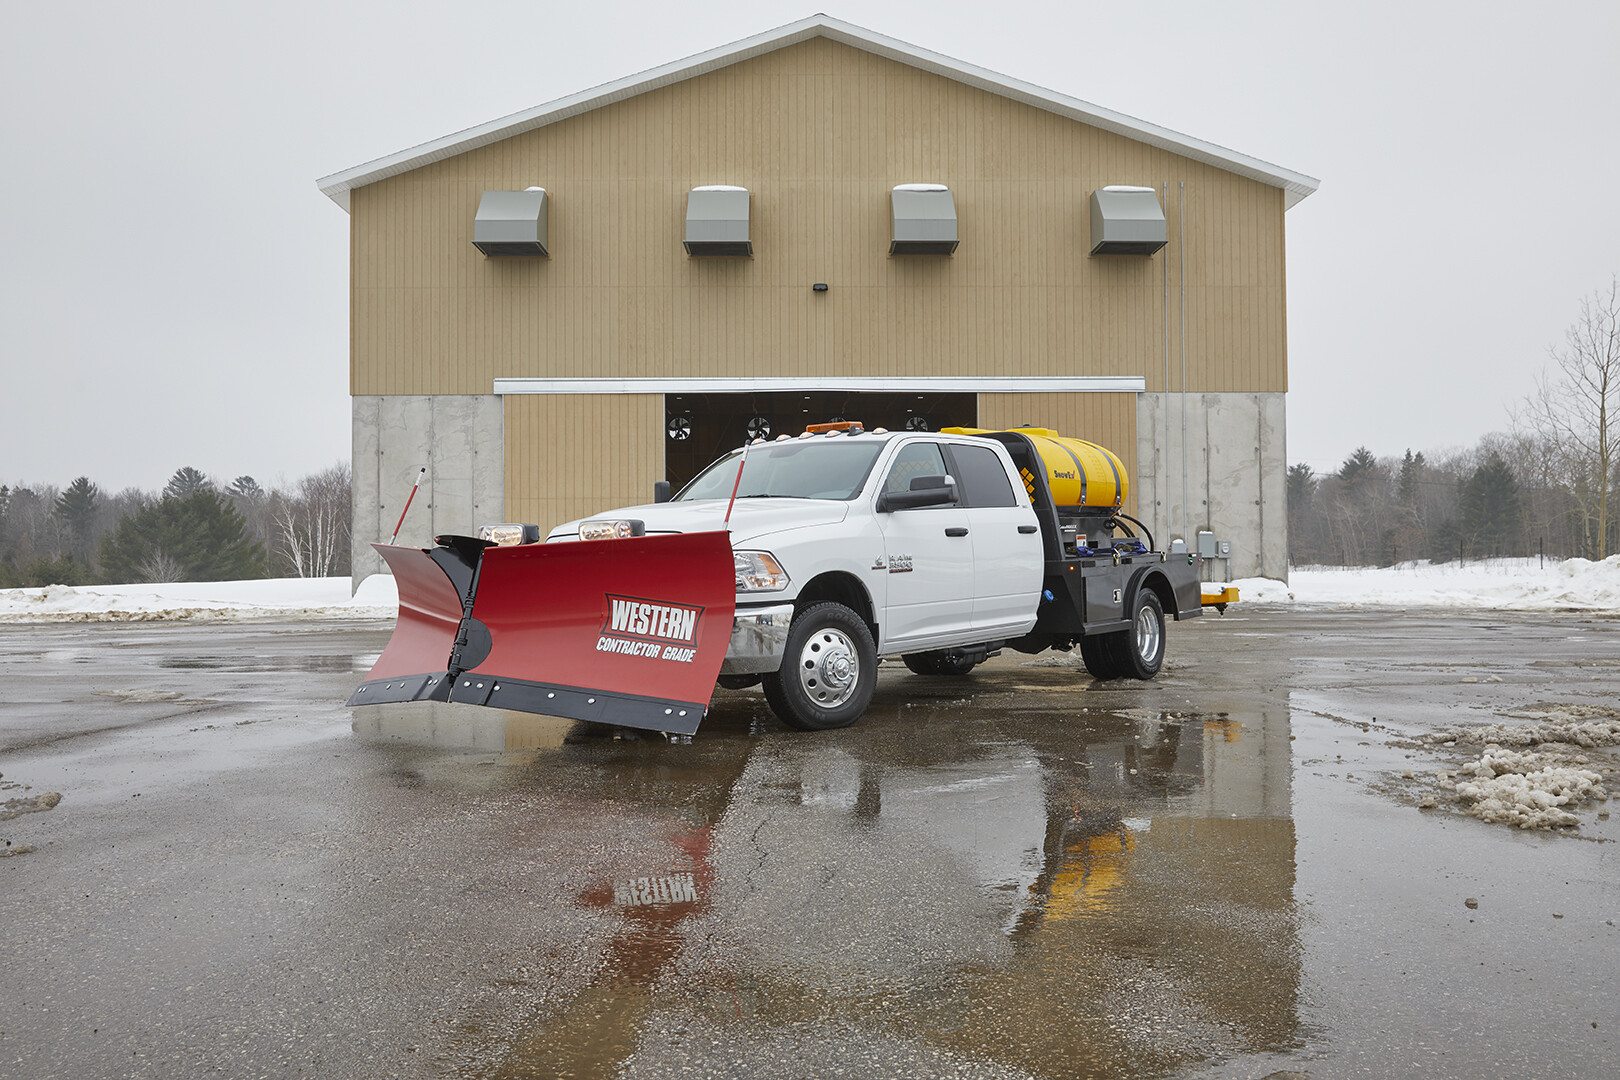 RAM 3500: CG Salt Spreader